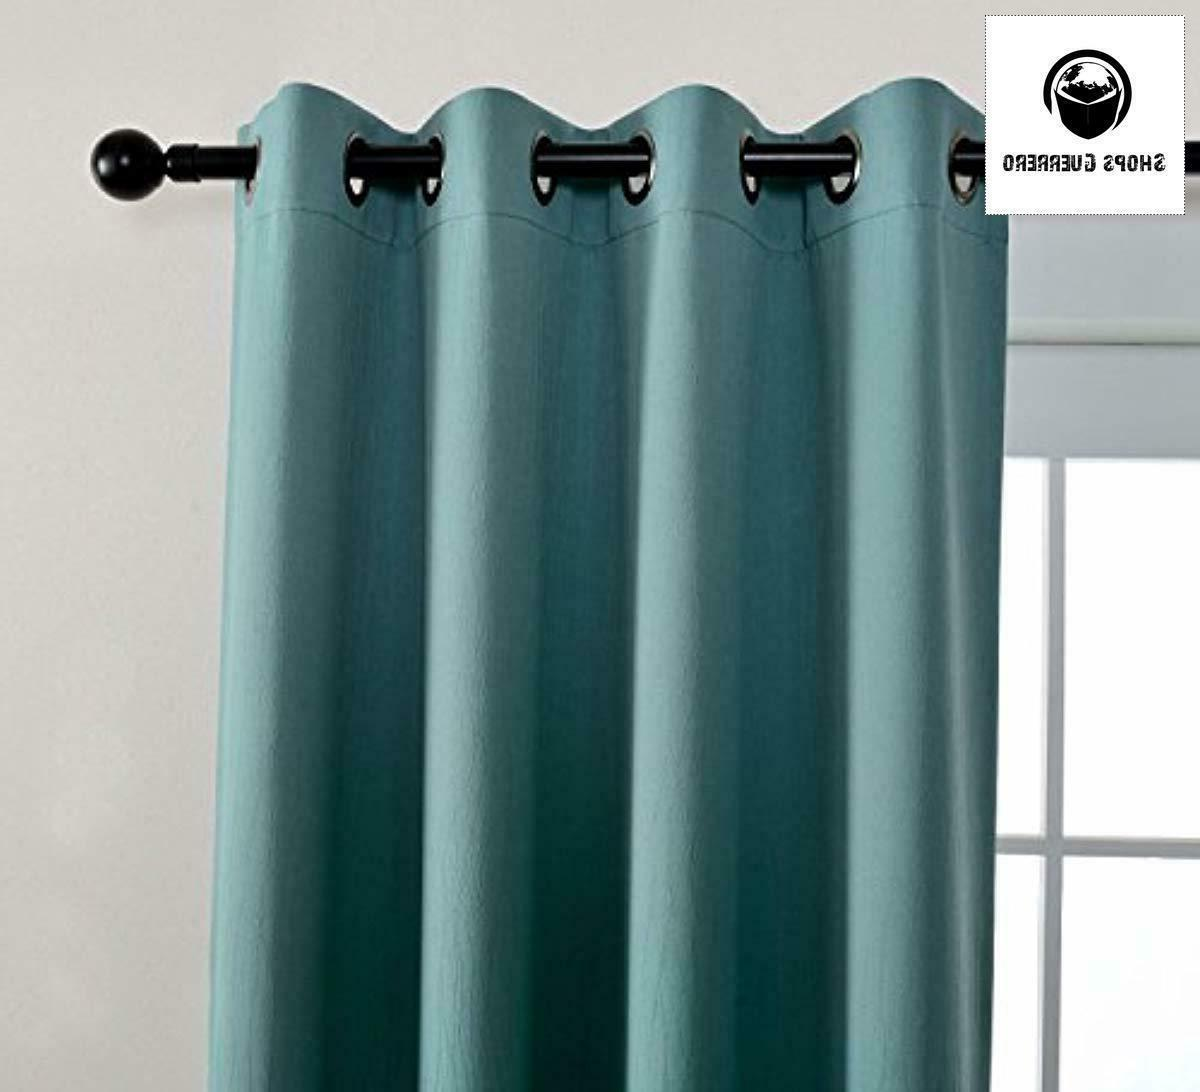 Miuco Blackout Room Darkening Curtains Curtains for